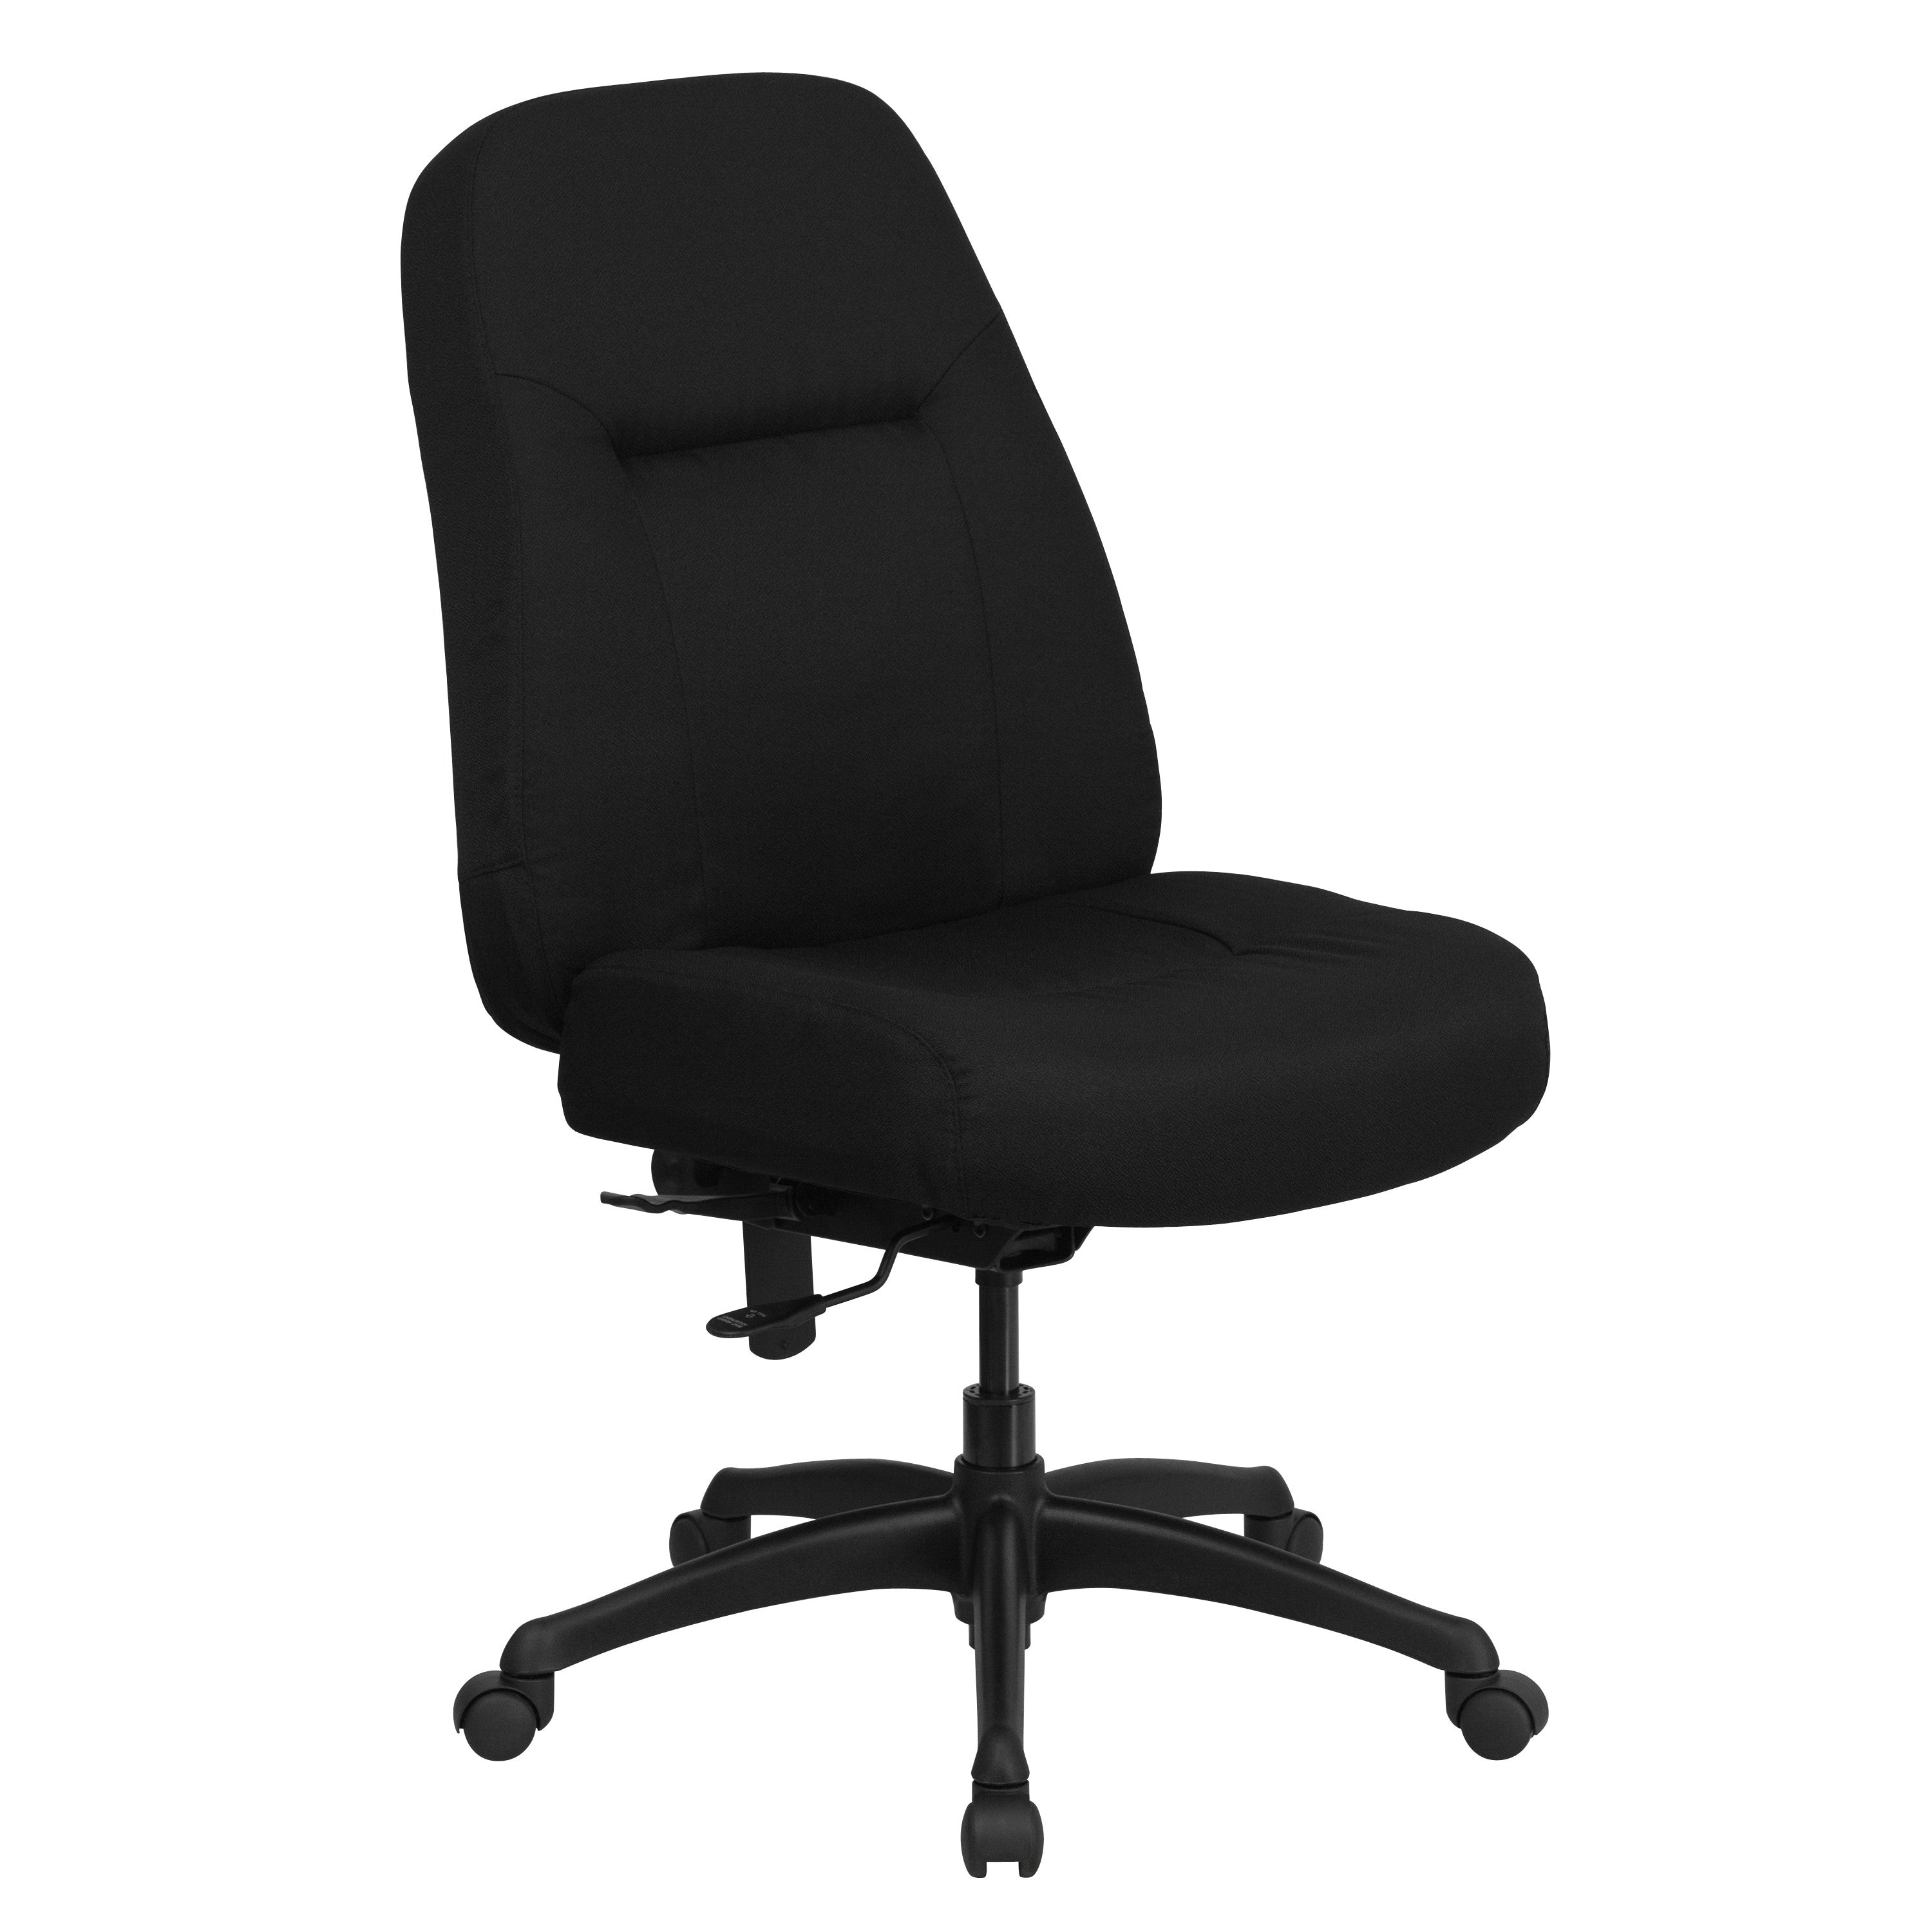 Big and Tall Office Chairs Best Quality and Most Comfortable